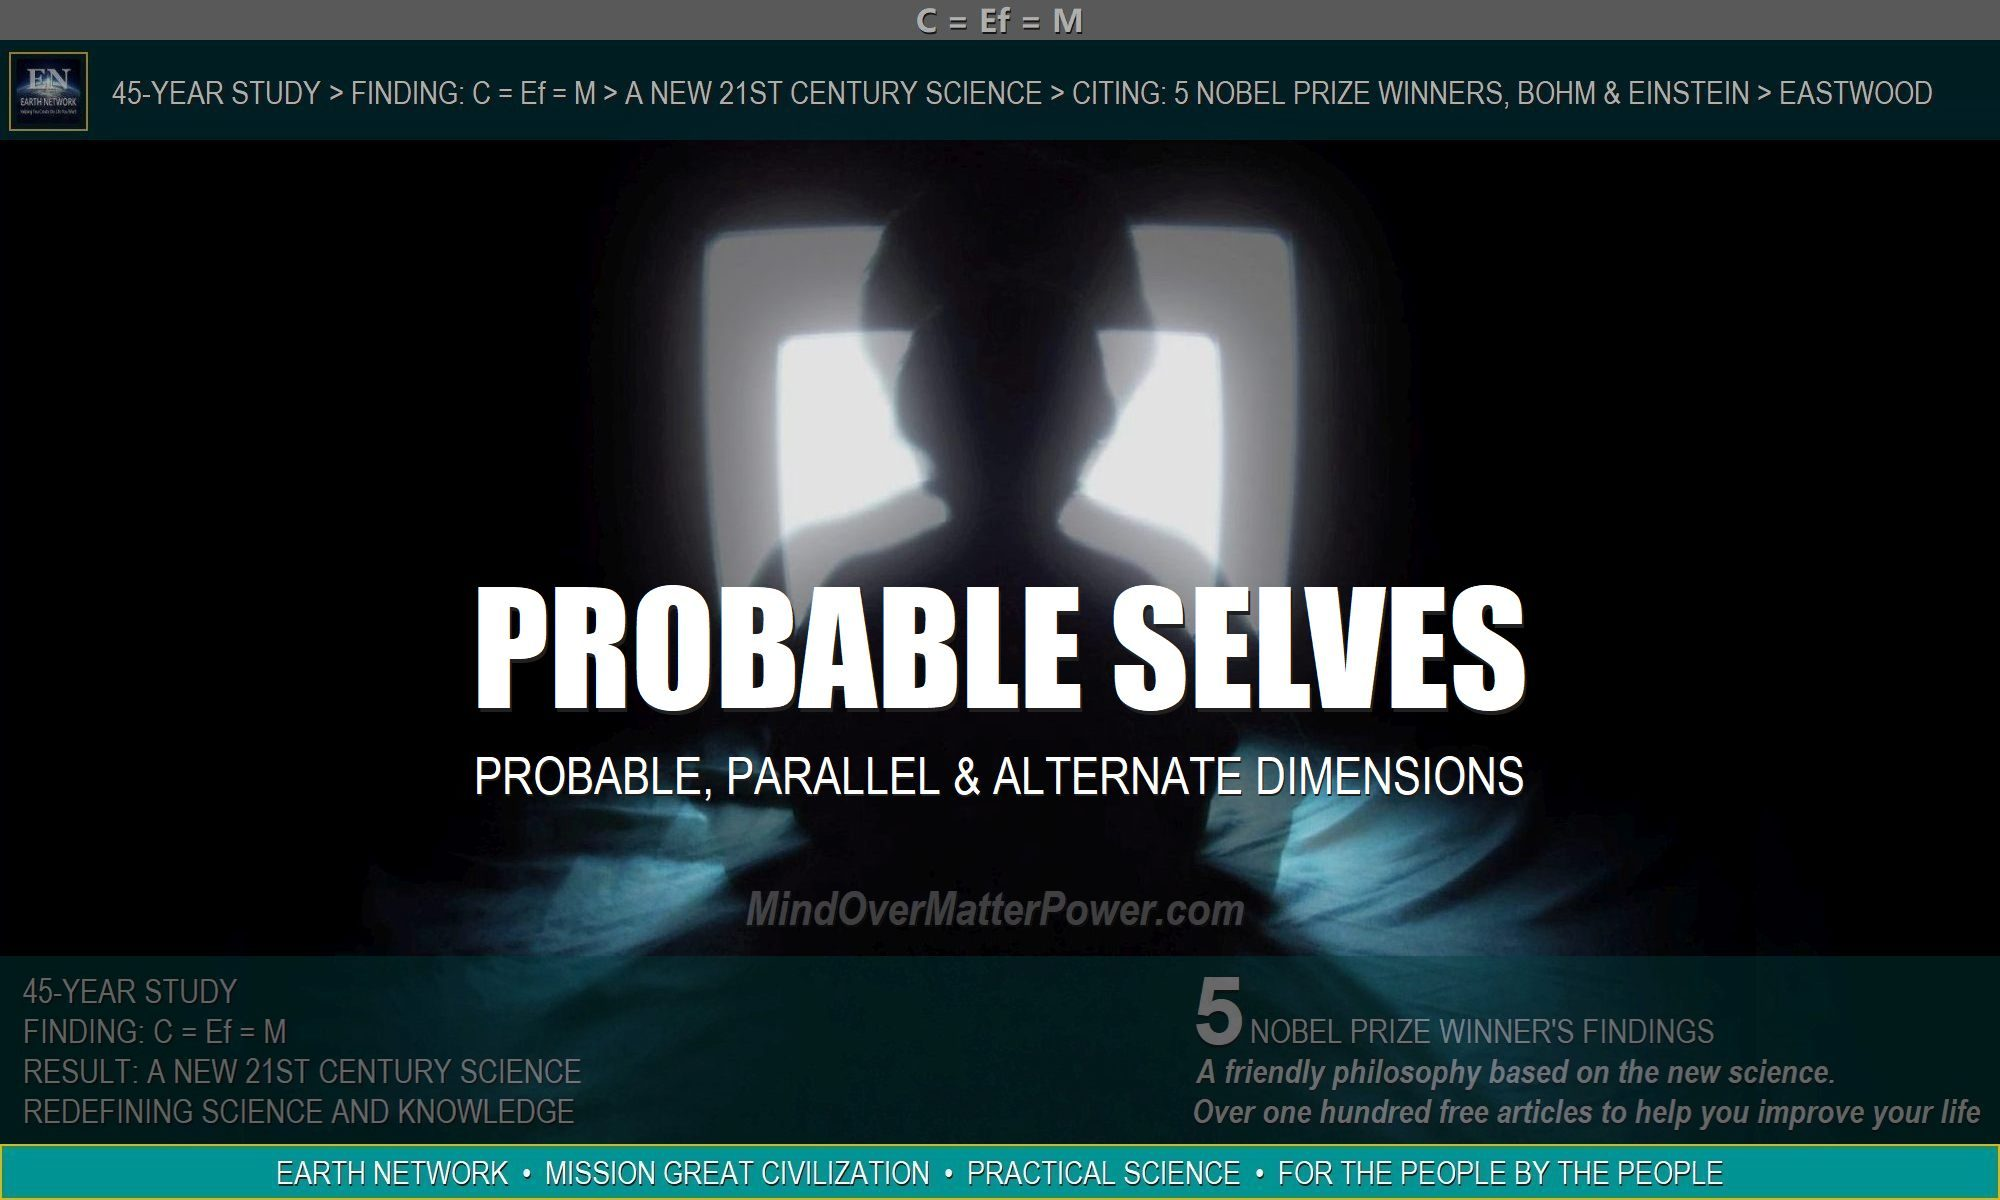 Person dividing in front of TV depicts existence of probable selves in alternate and parallel dimensions of reality.